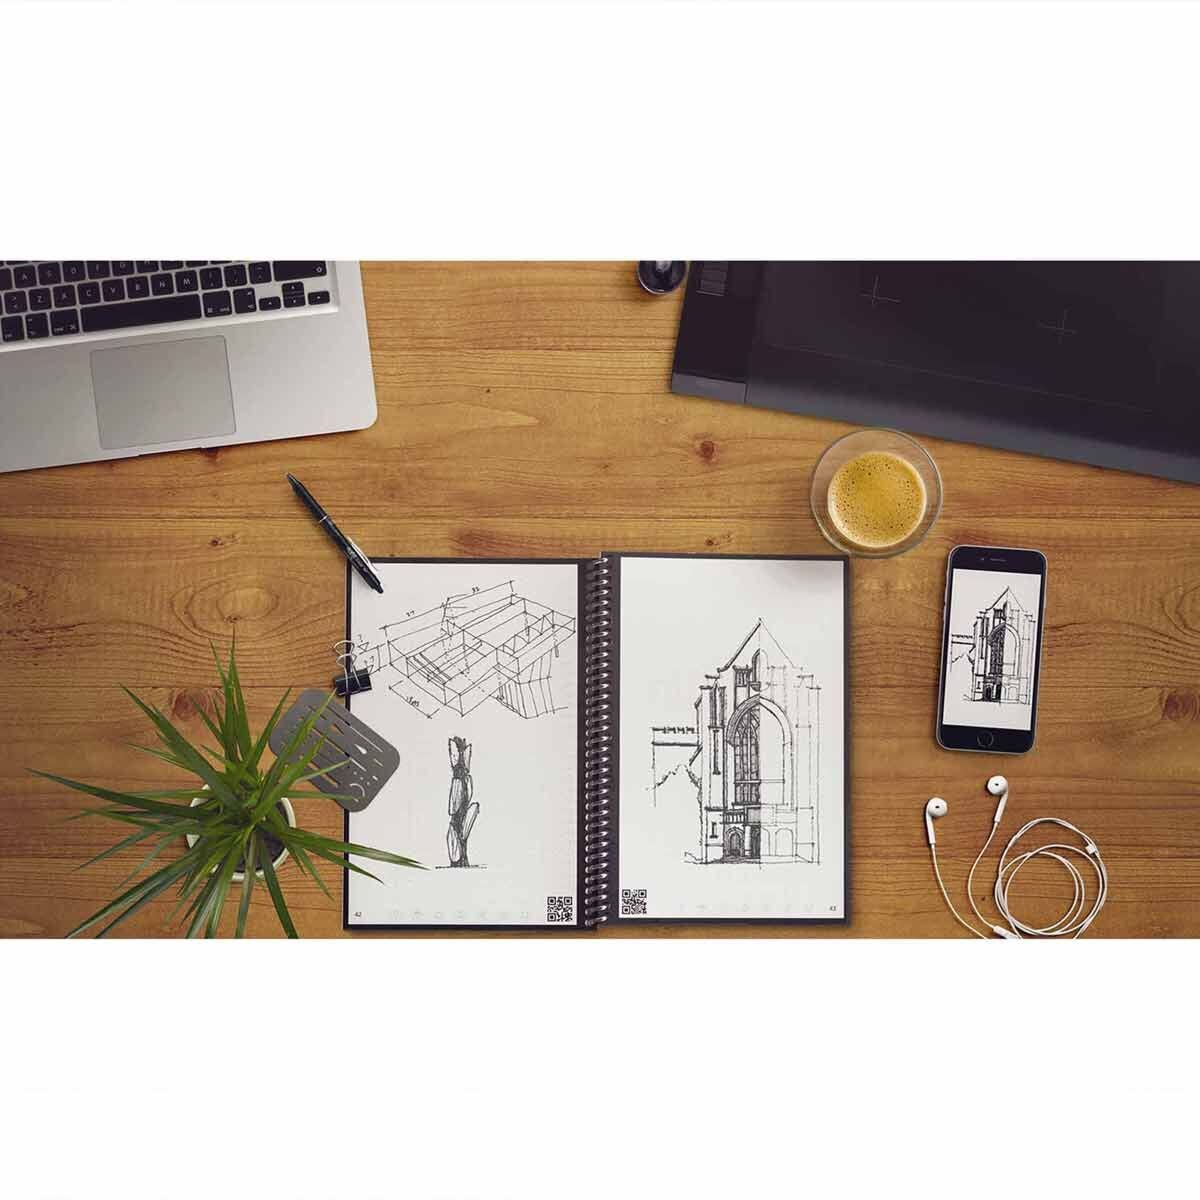 Rocketbook Everlast Smart Reusable Notebook A5 Executive with Pilot FriXion Pen and Wipe